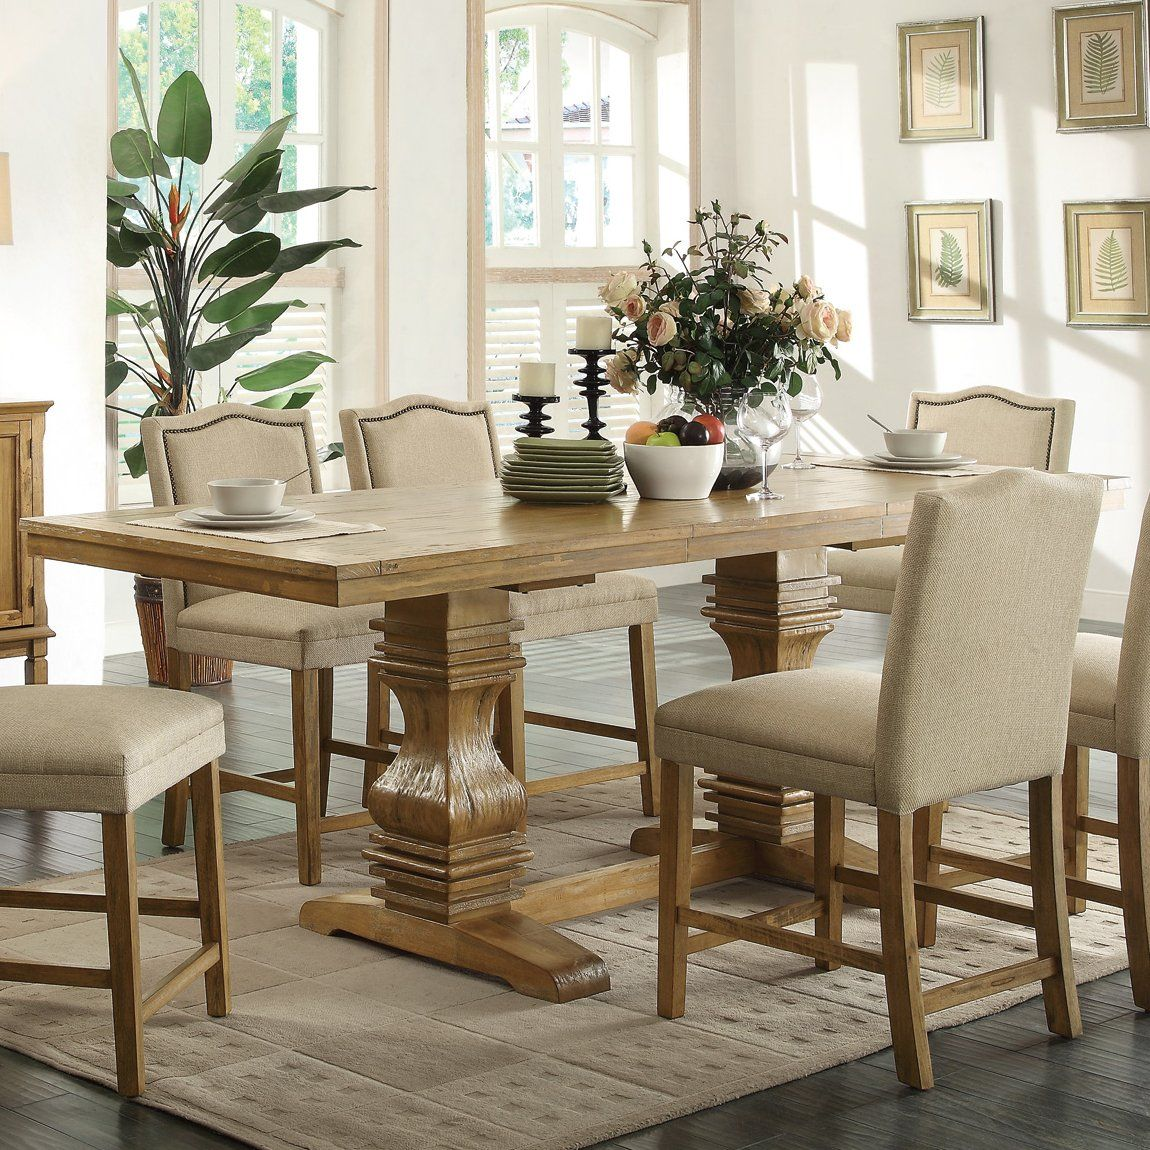 Coaster Fine Furniture 103718 Parkins Counter Height Dining Table At Atg S